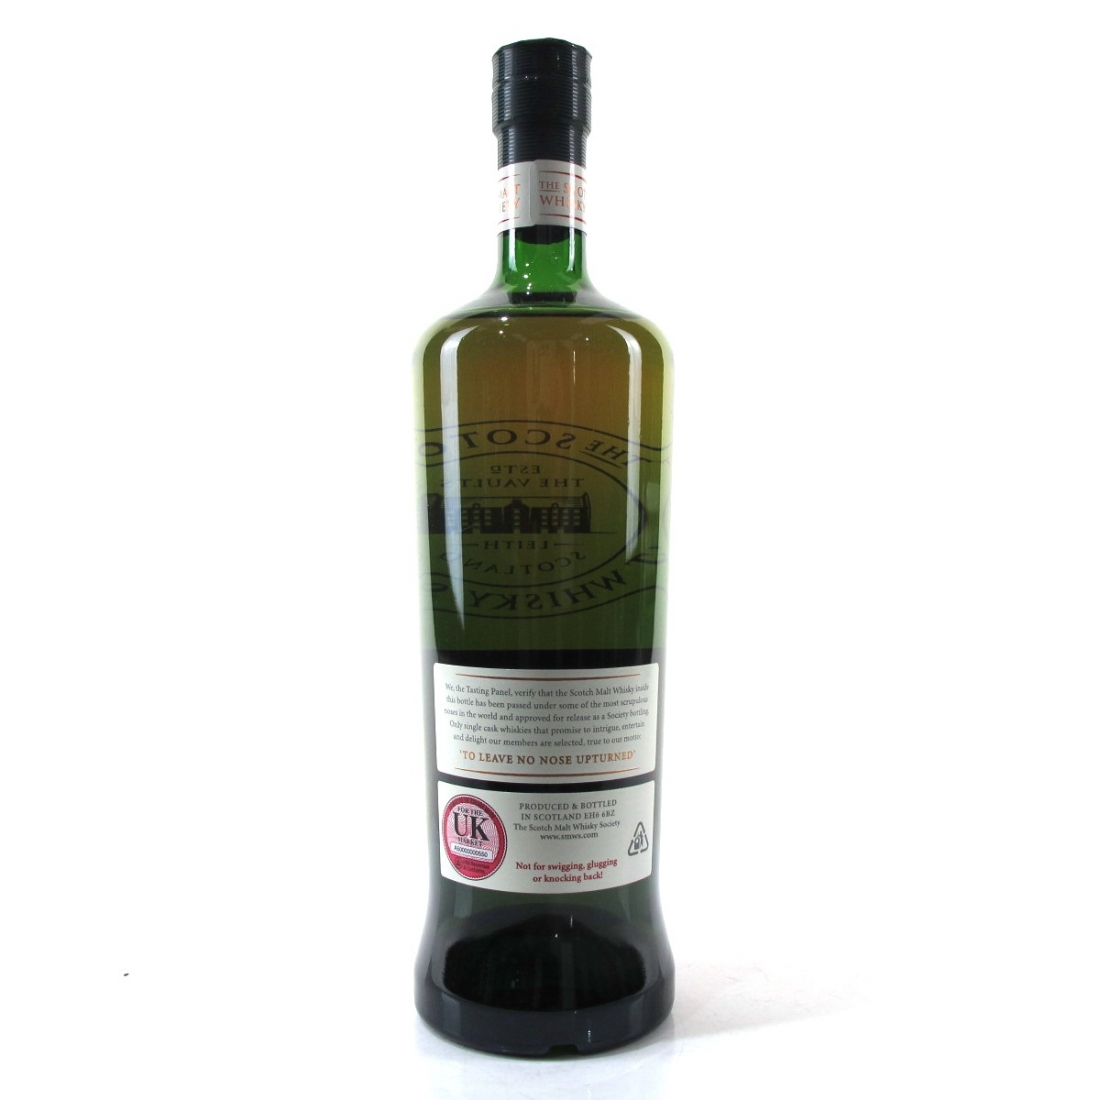 Cardhu 1984 SMWS 27 Year Old 106.18